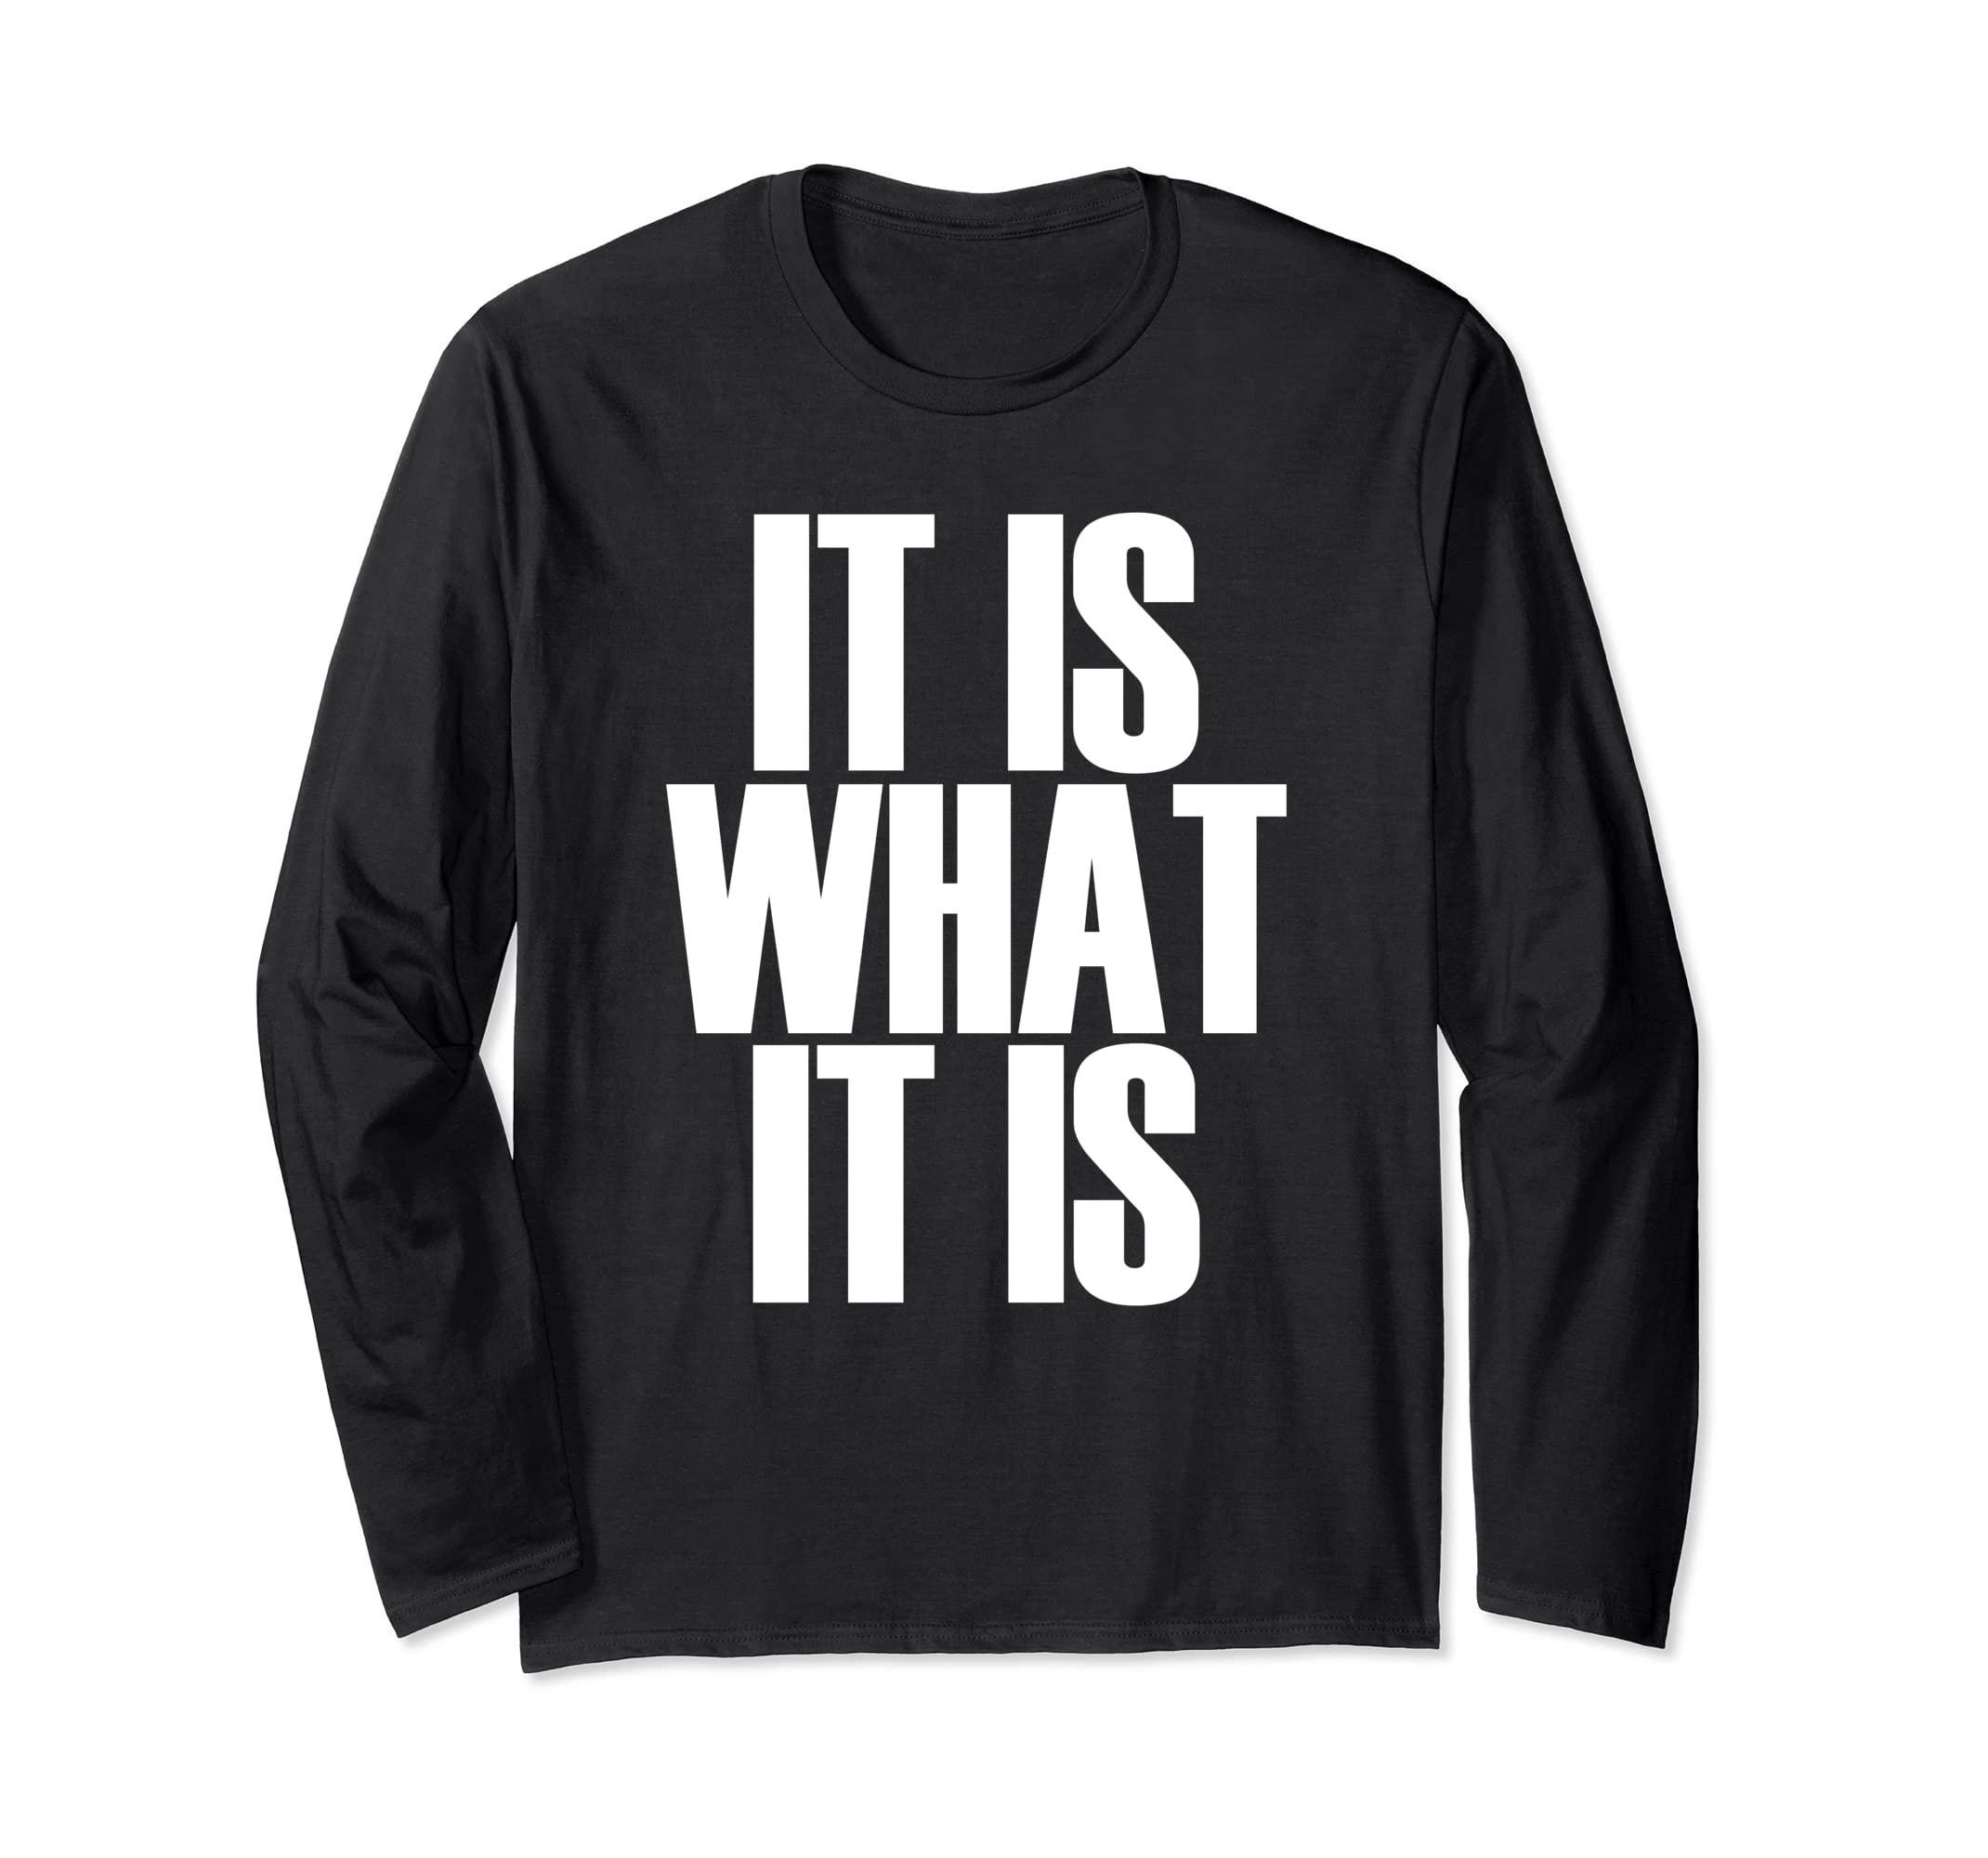 532f7bbb Amazon.com: It Is What It Is - Quote Long Sleeve Shirt: Clothing